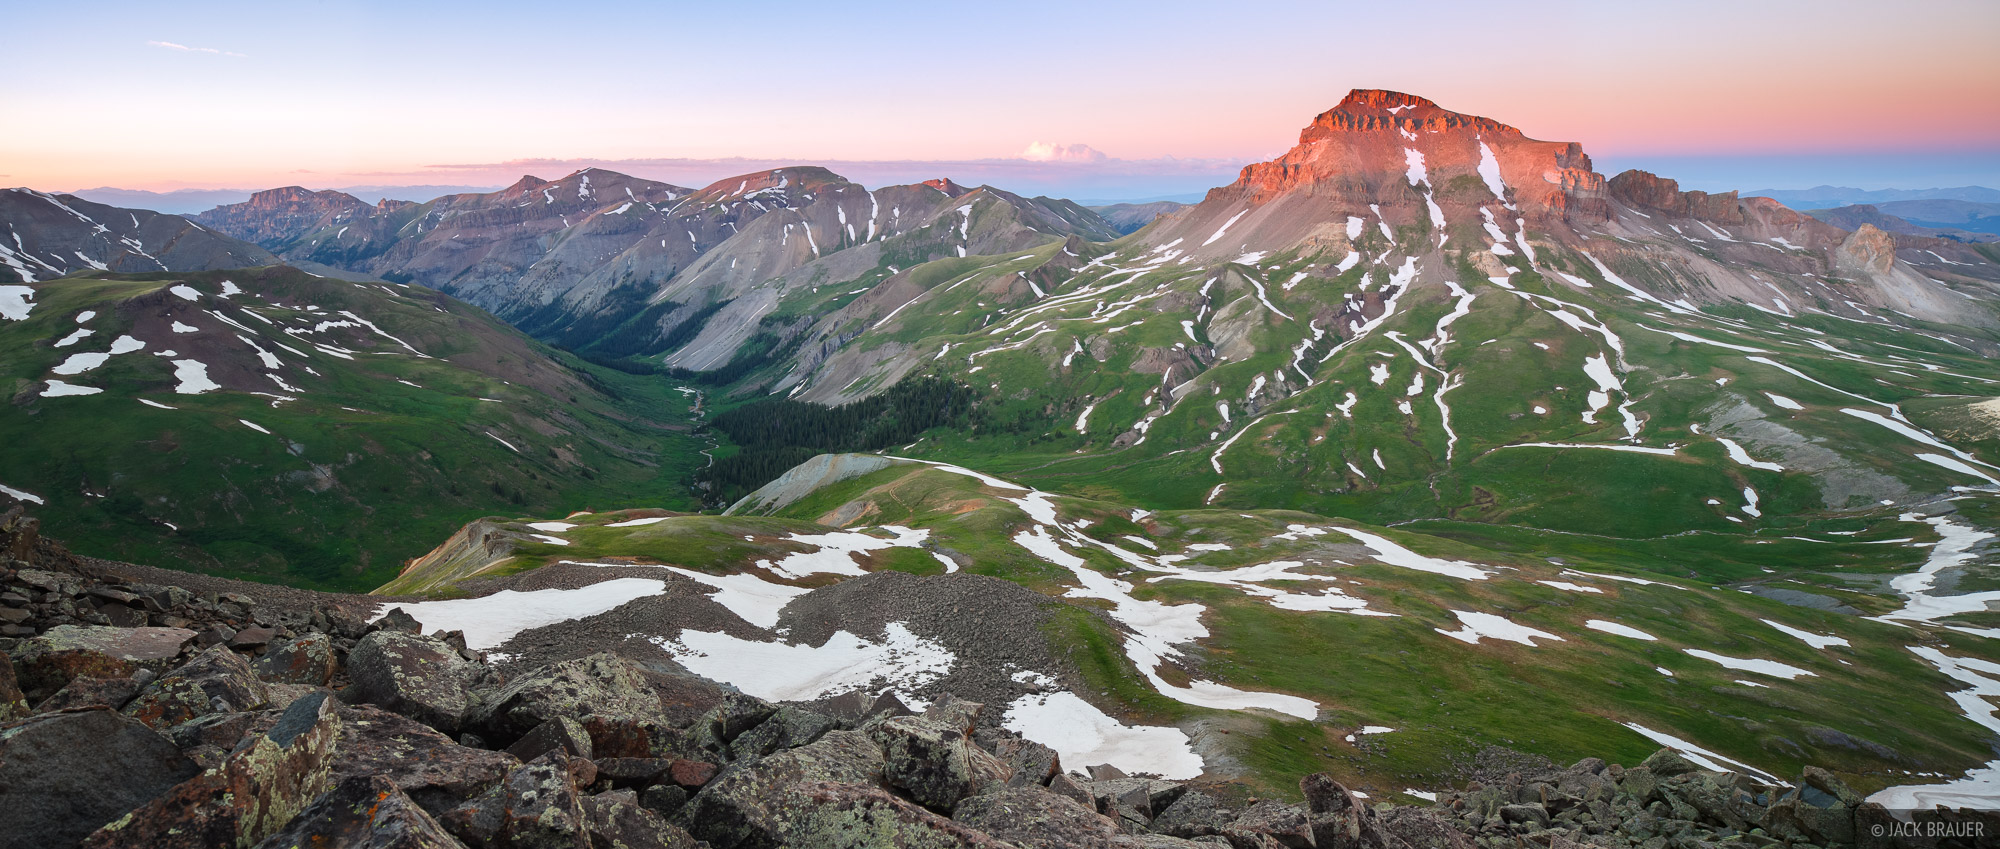 Uncompahgre Peak, sunset, panorama, fourteener, San Juan Mountains, Colorado, photo